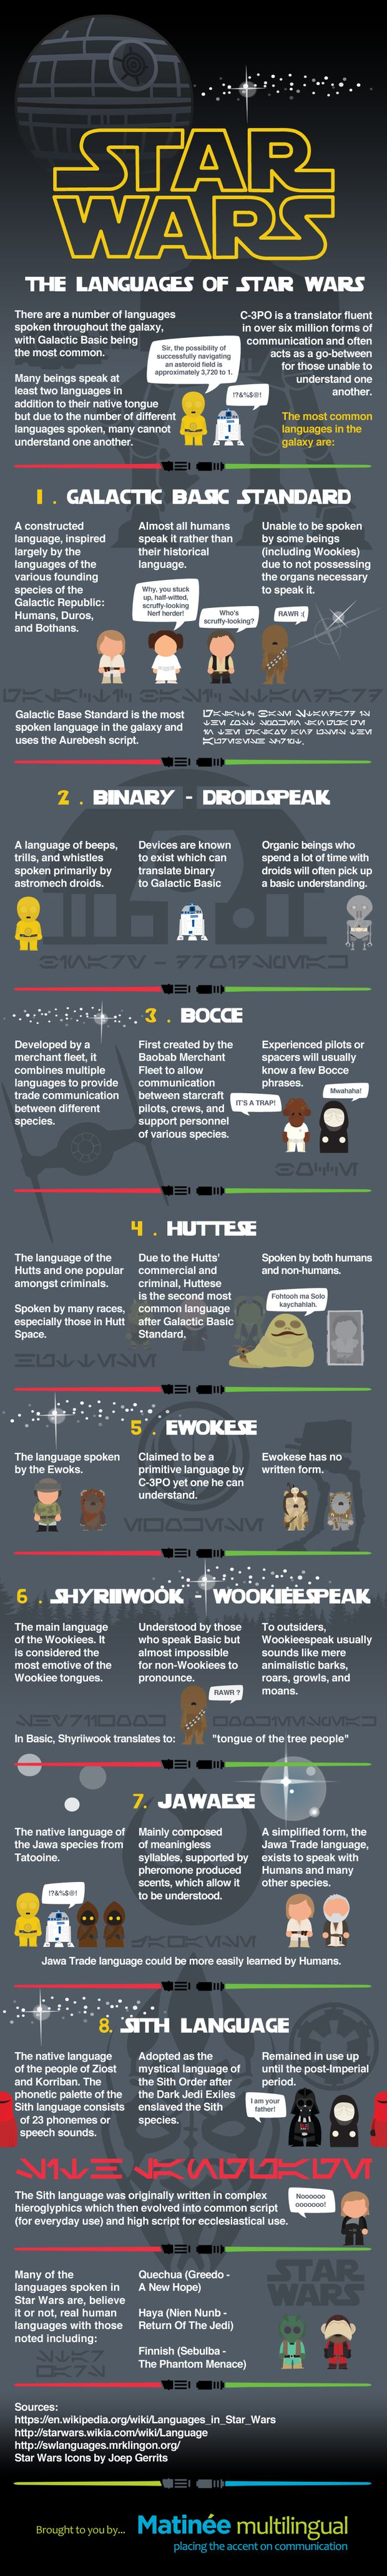 Infographic of Facts About the Languages of the Star Wars Films | Mental Floss